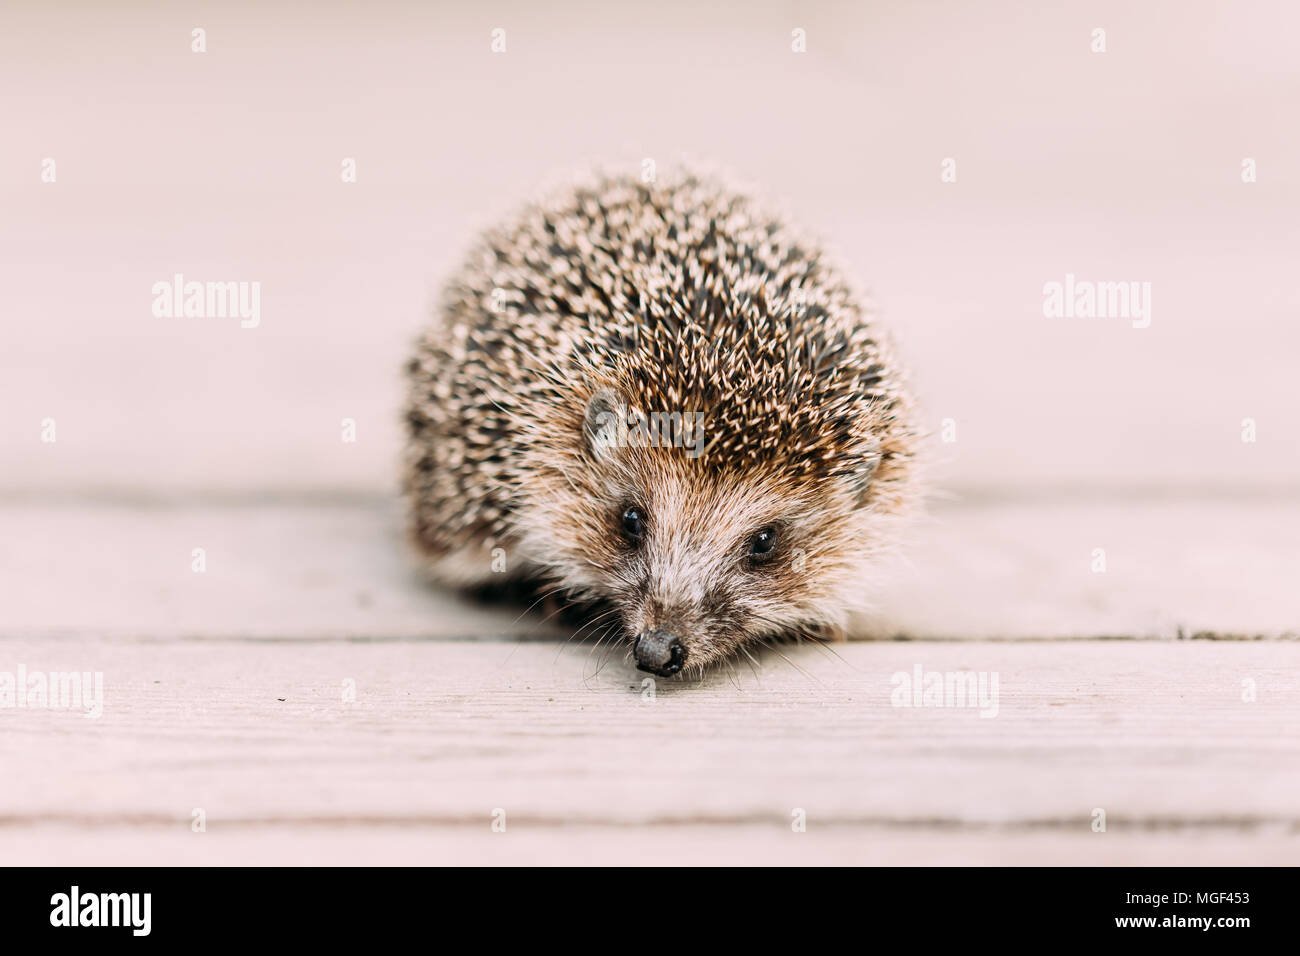 Small Funny Hedgehog Standing On Wooden Floor. European Hedgehog Or Erinaceus Europaeus, Also Known As The West European Hedgehog - Stock Image